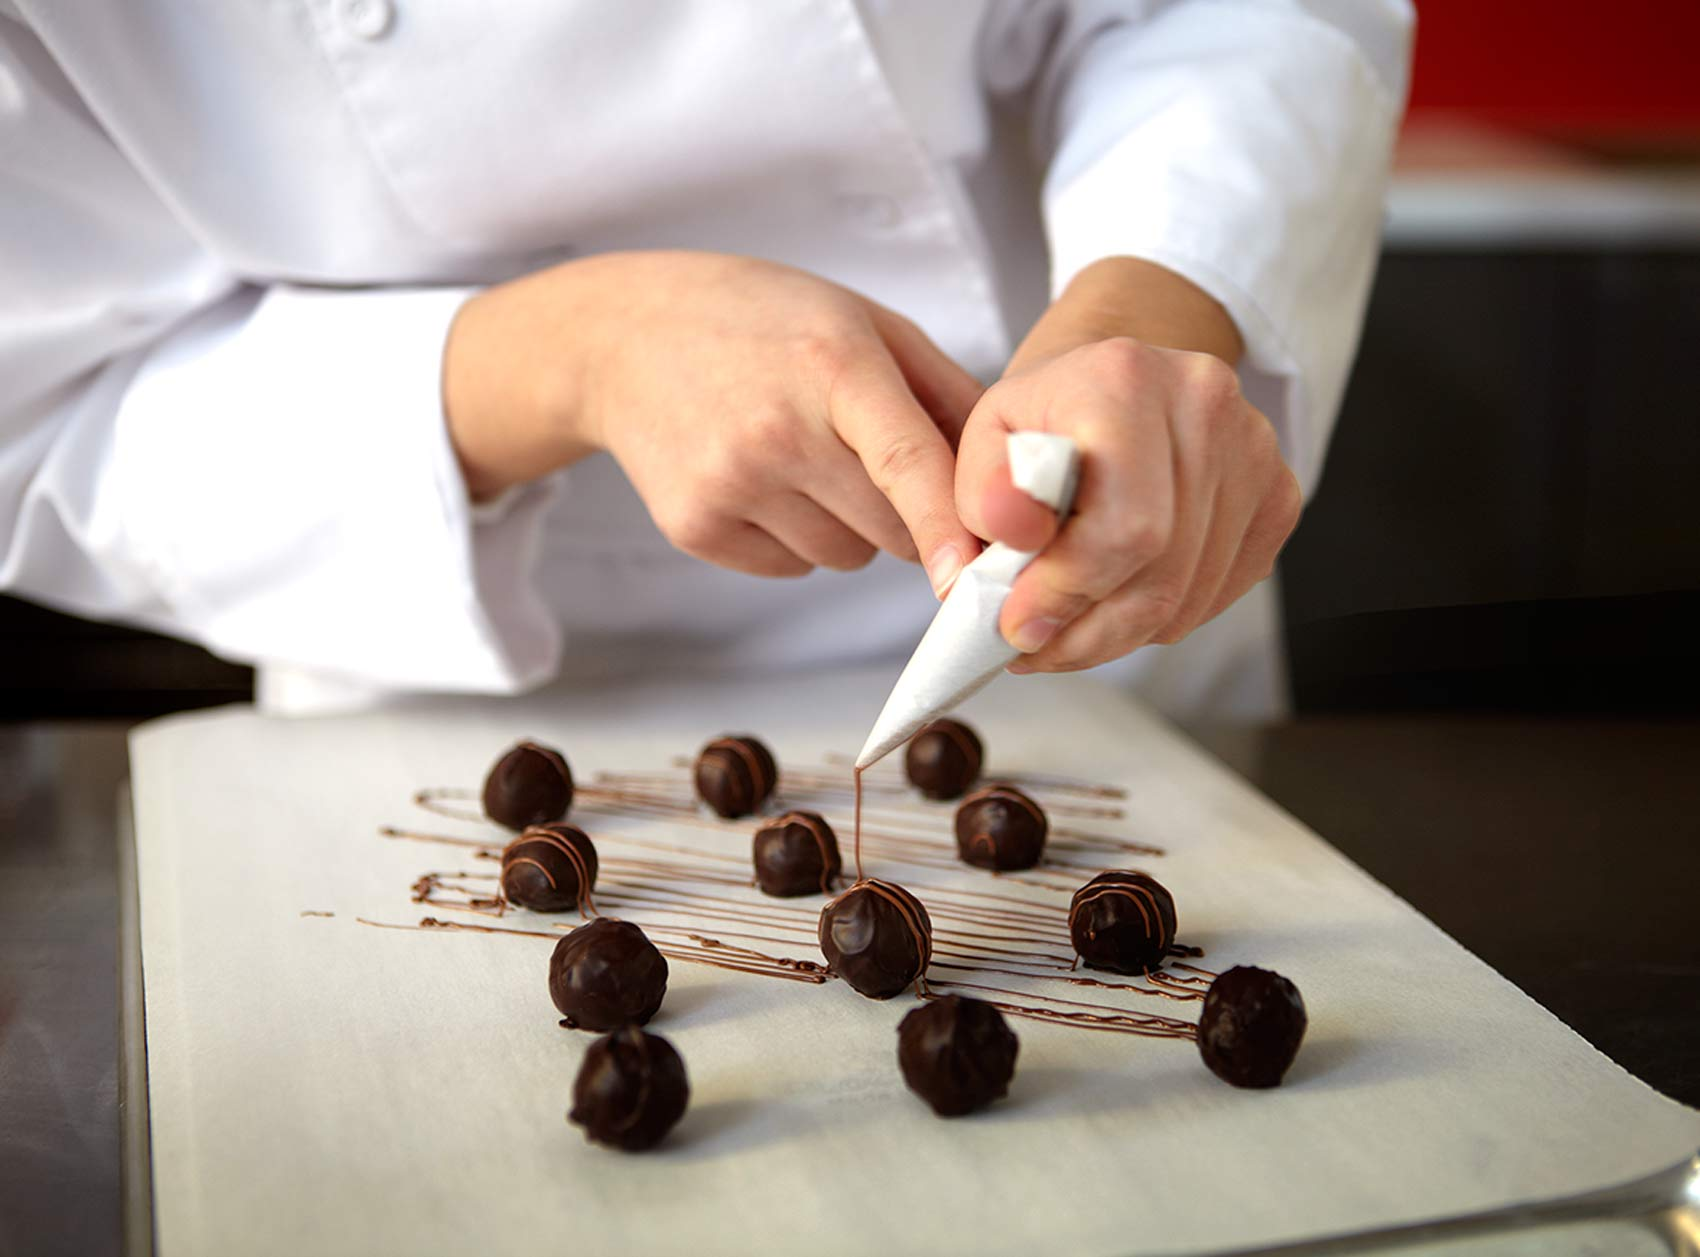 piping chocolate on truffles